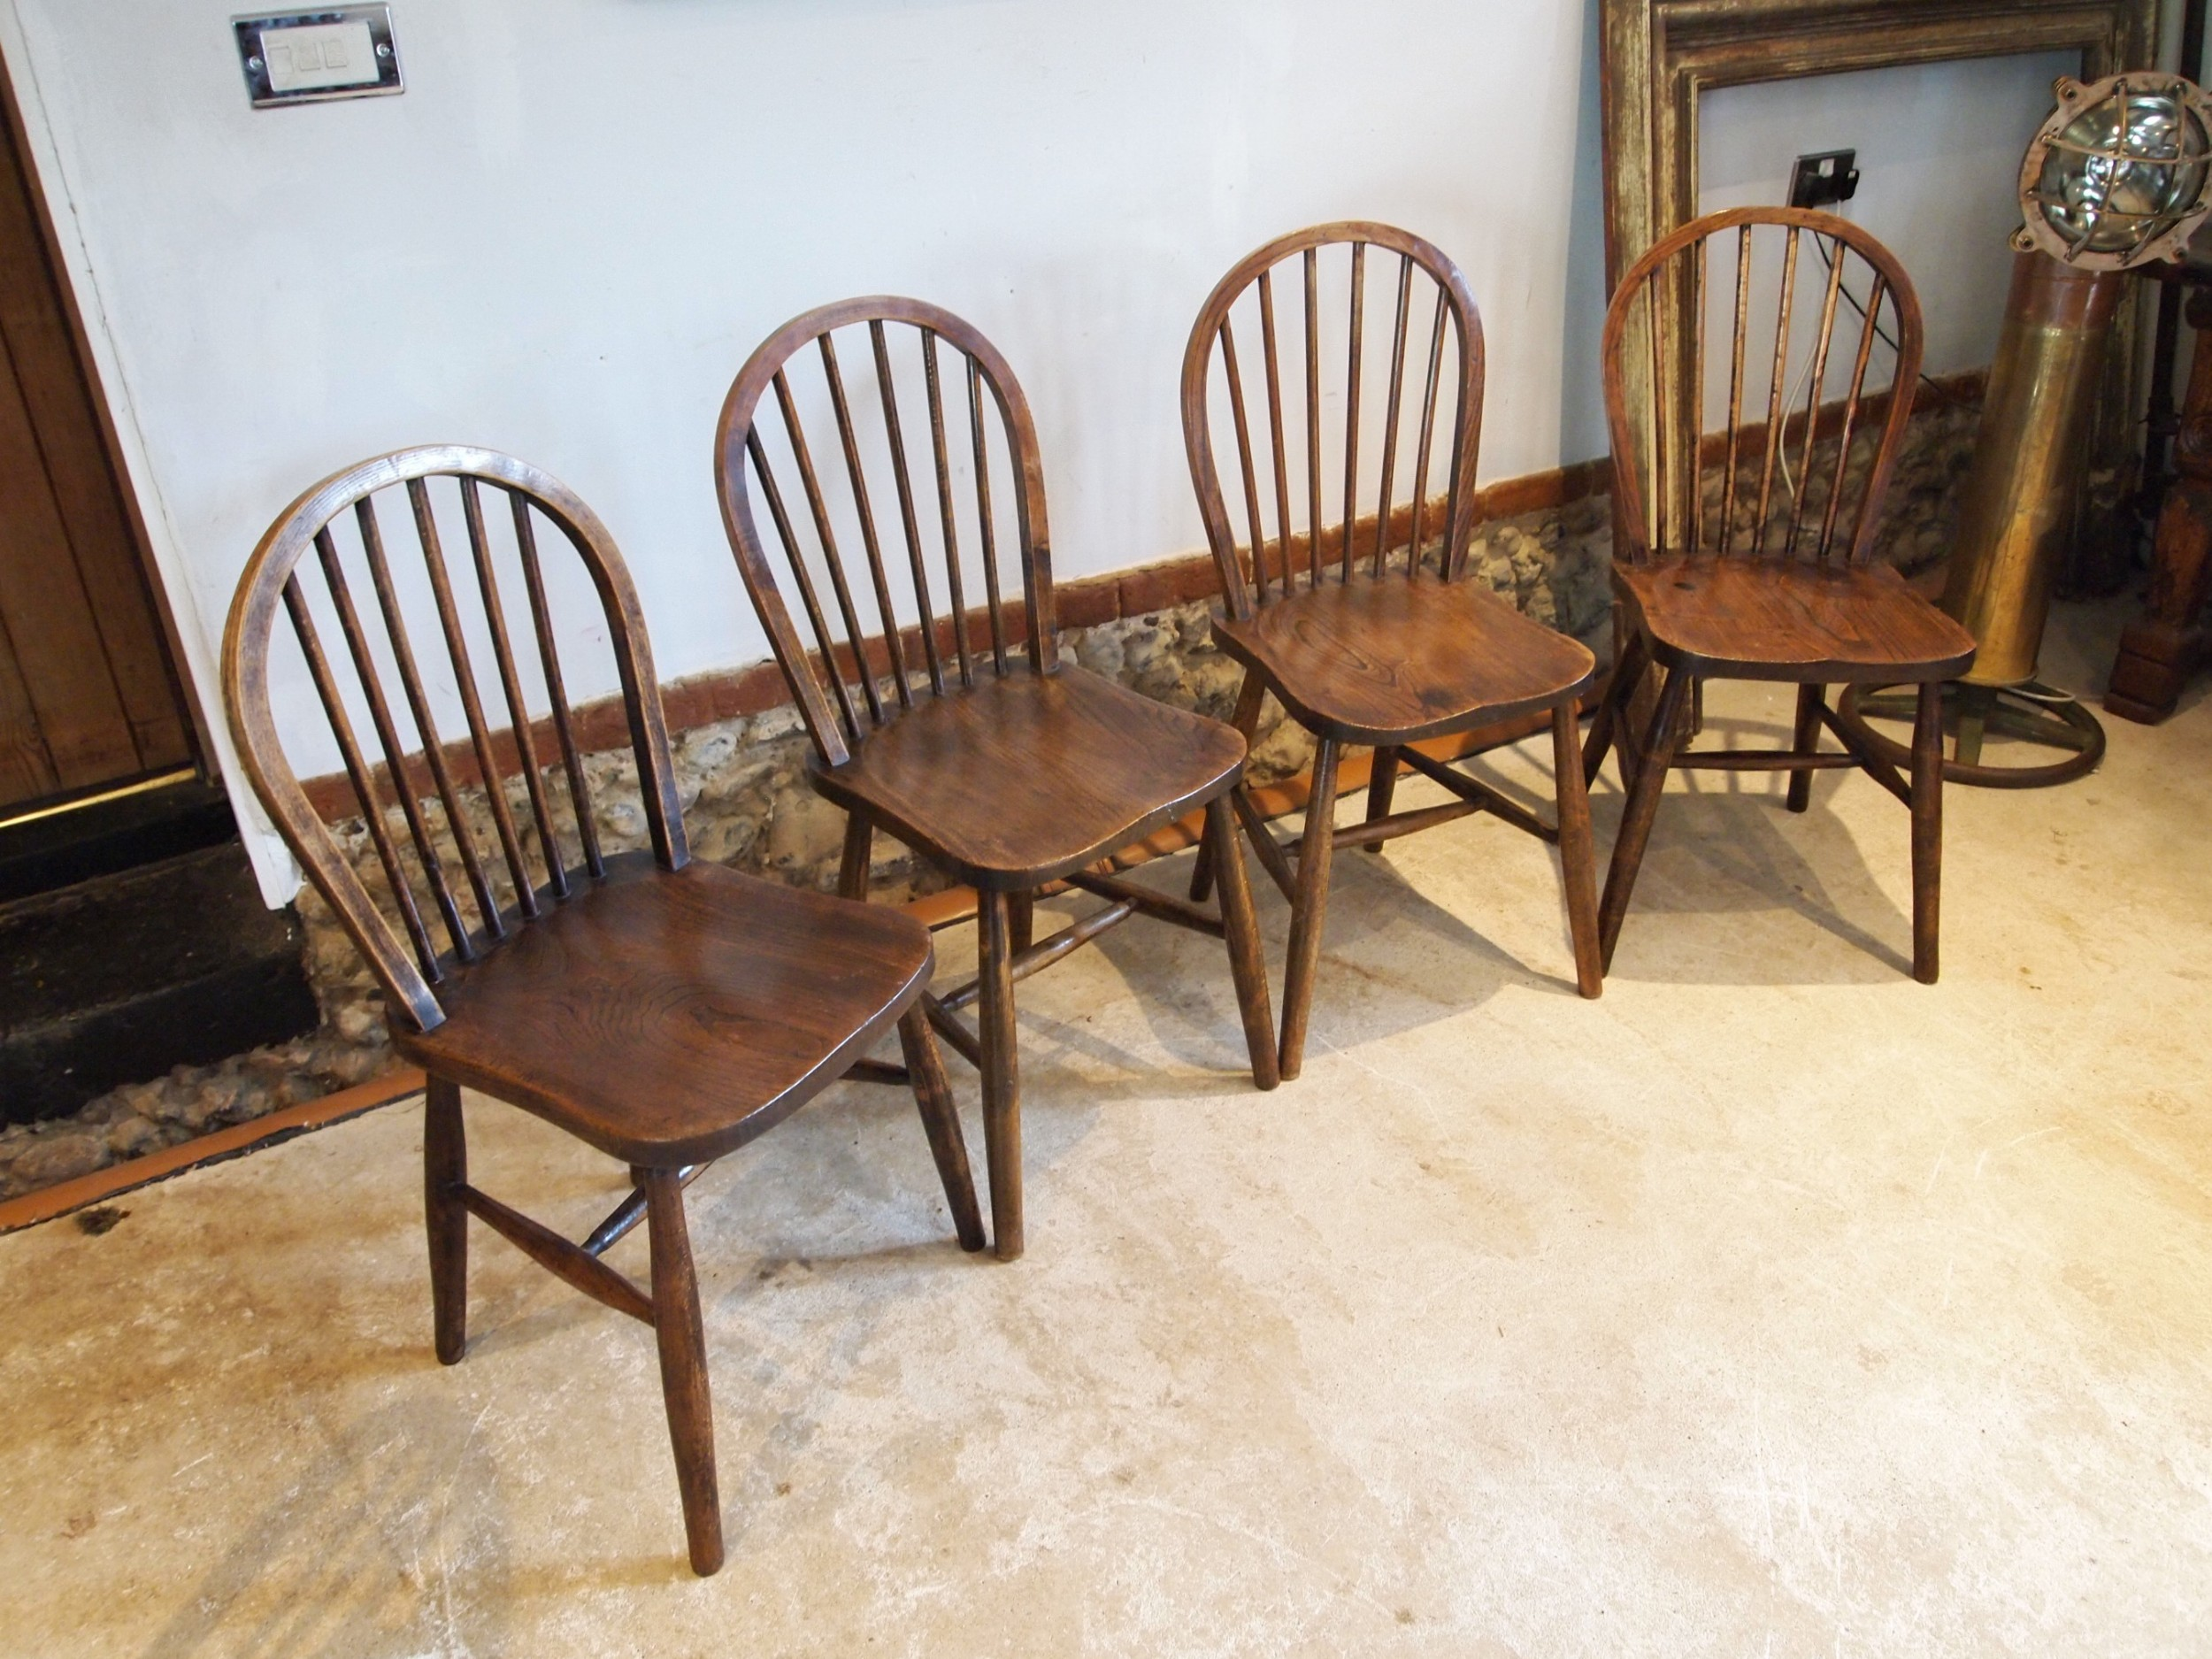 chairs windsor dining kitchen chairs set of 4 edwardian elm ash beech c1900